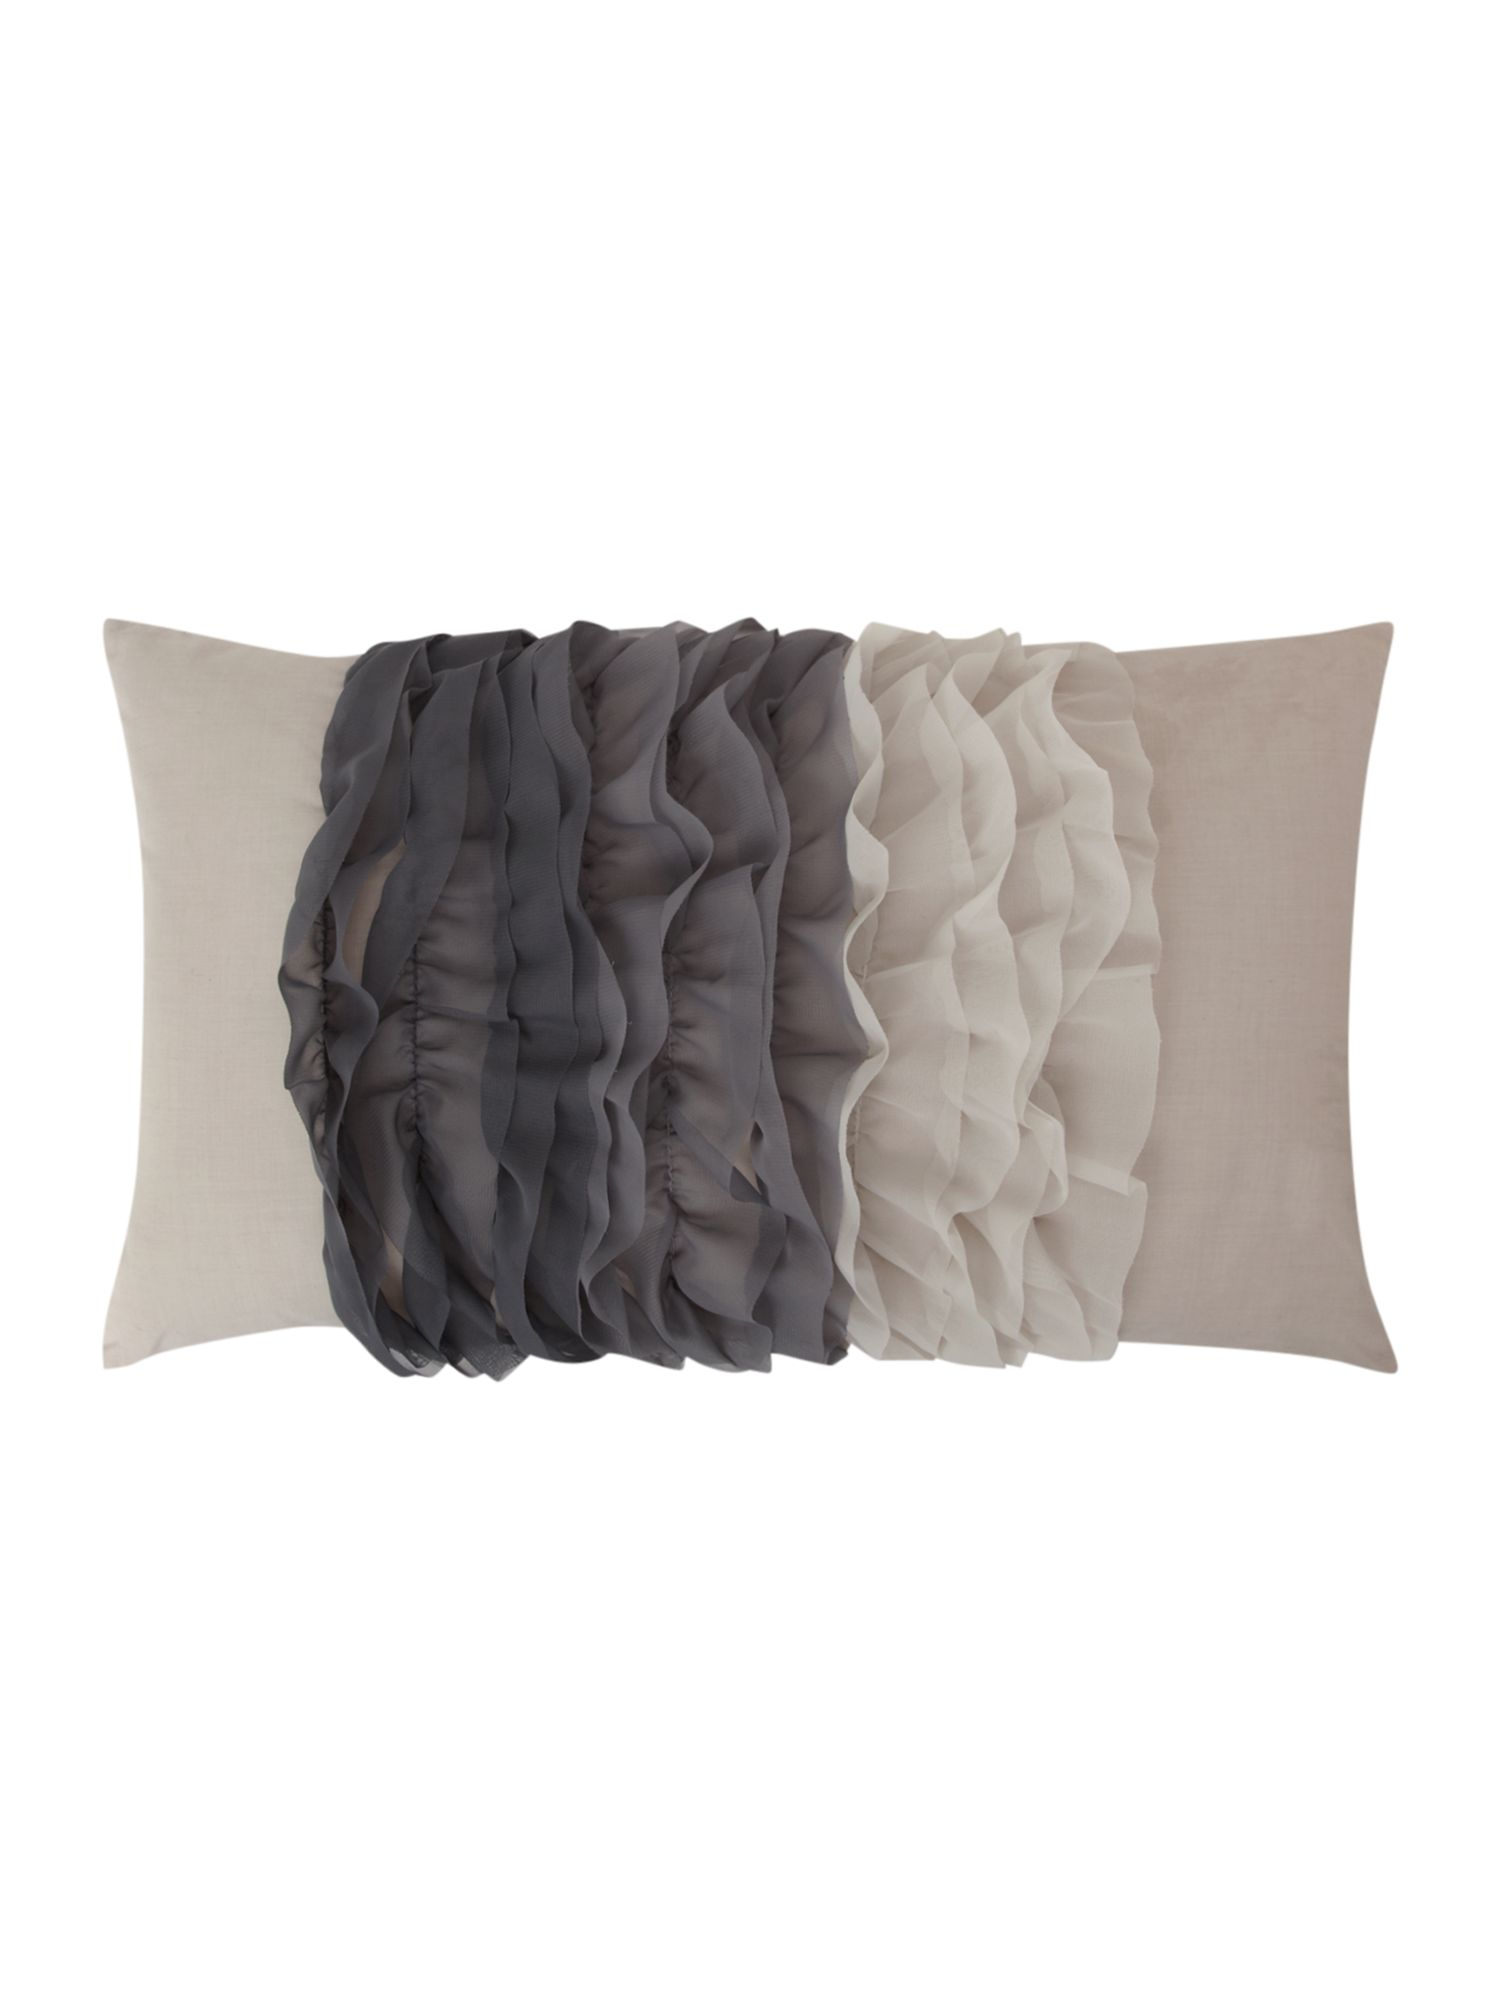 Ombre ruffle cushion